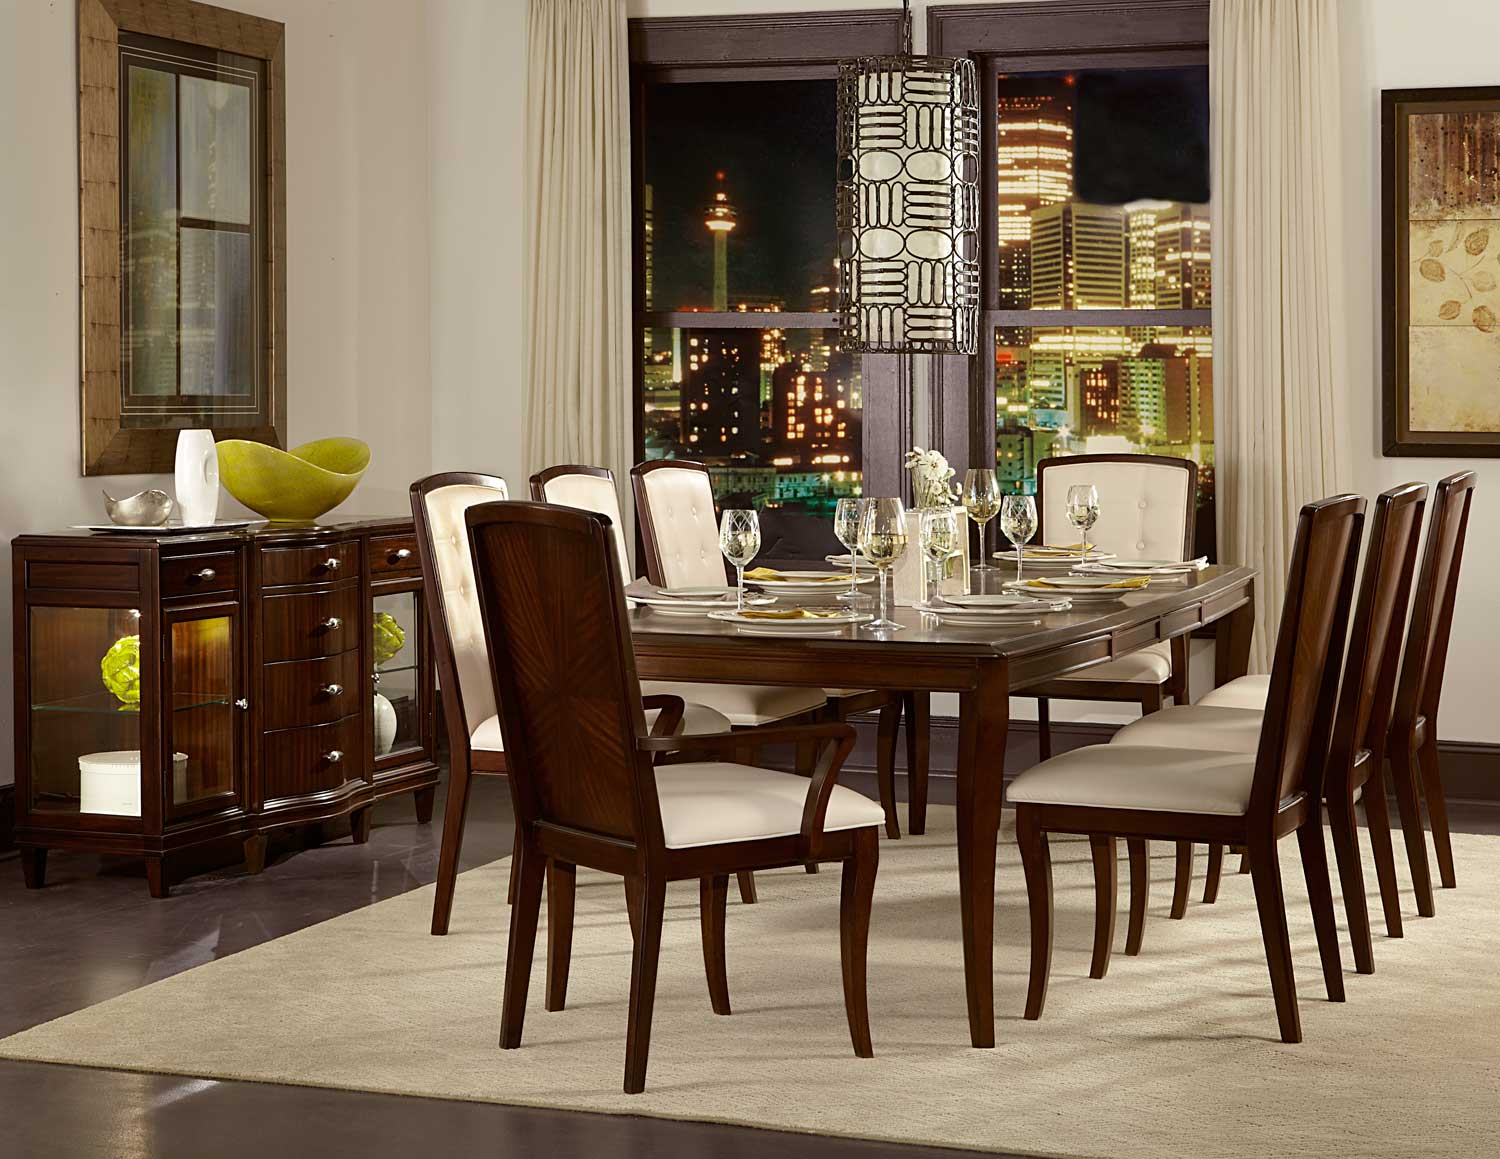 Homelegance Abramo Dining Set - Sapele/Walnut Inlay